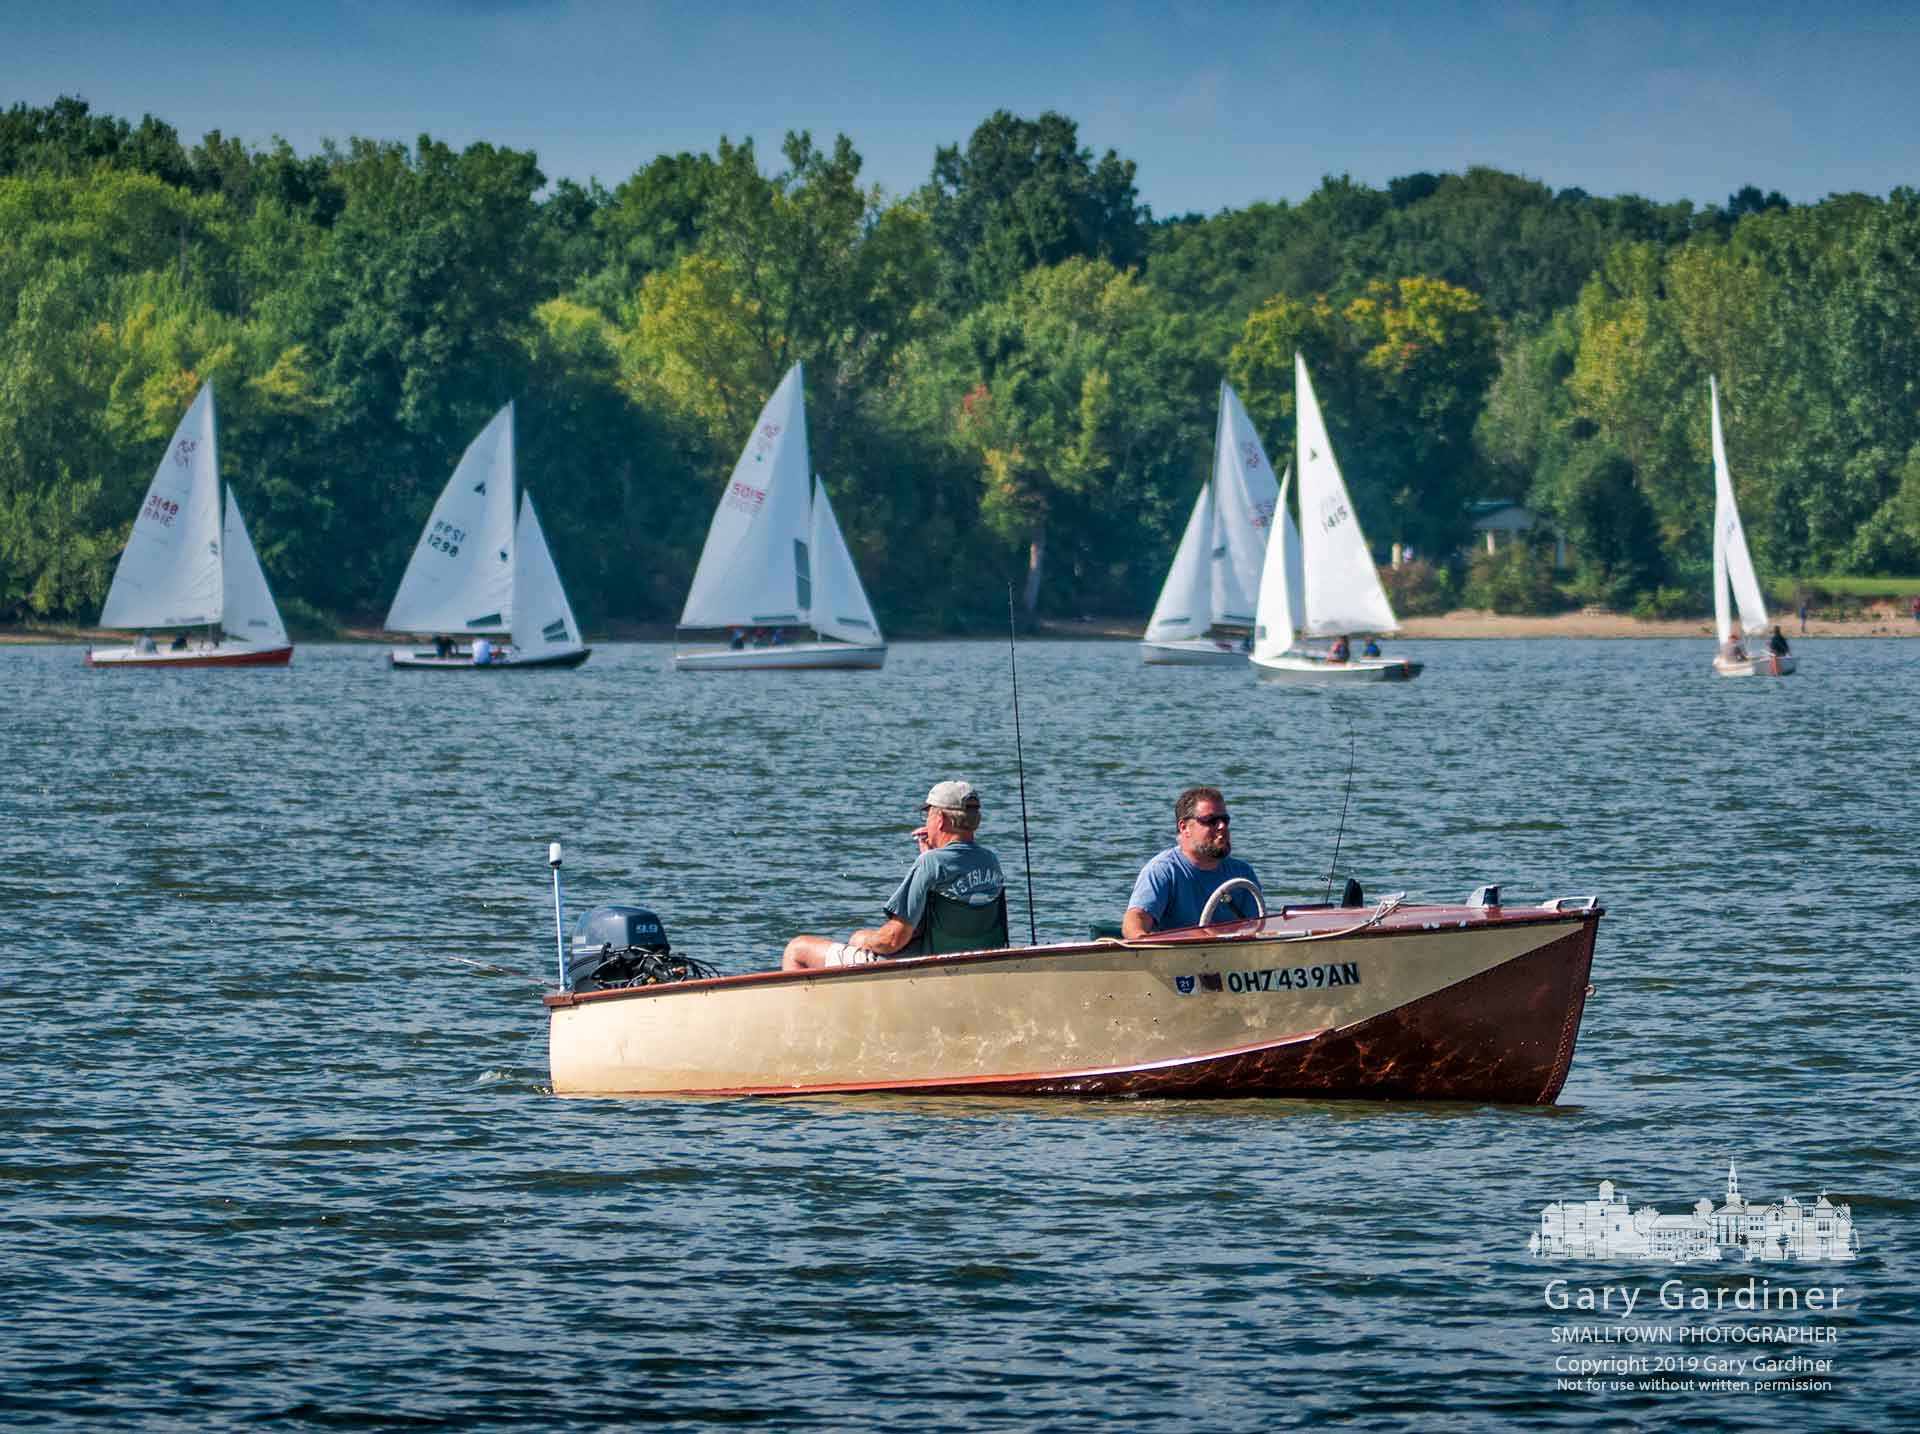 A pair of anglers navigate themselves around a flotilla of sailors challenging each other in the Labor Day club racing series on a near-perfect day for both fishing and sailing. My Final Photo for Sept. 2, 2019.